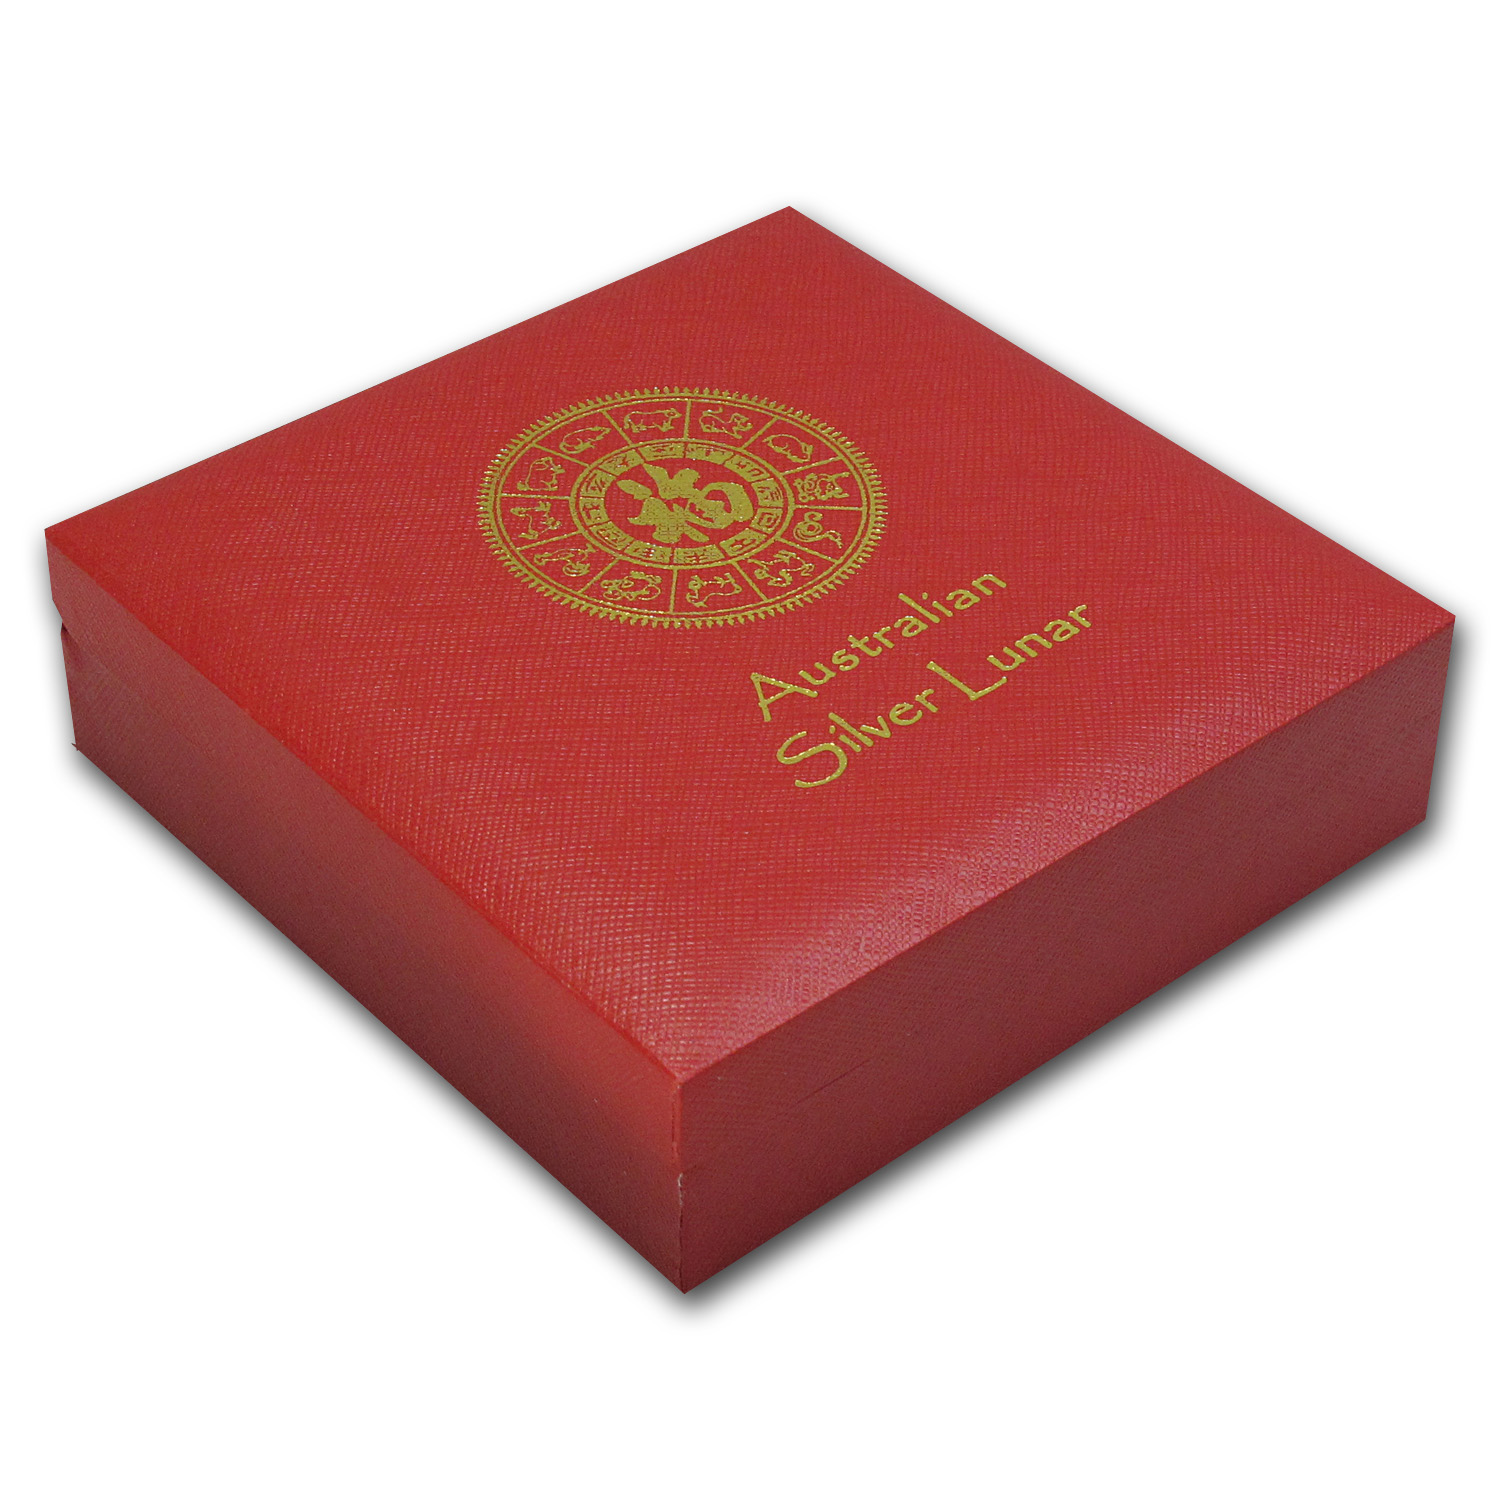 Lunar Series 1 & 2 (Kilo Silver) Red Presentation Box